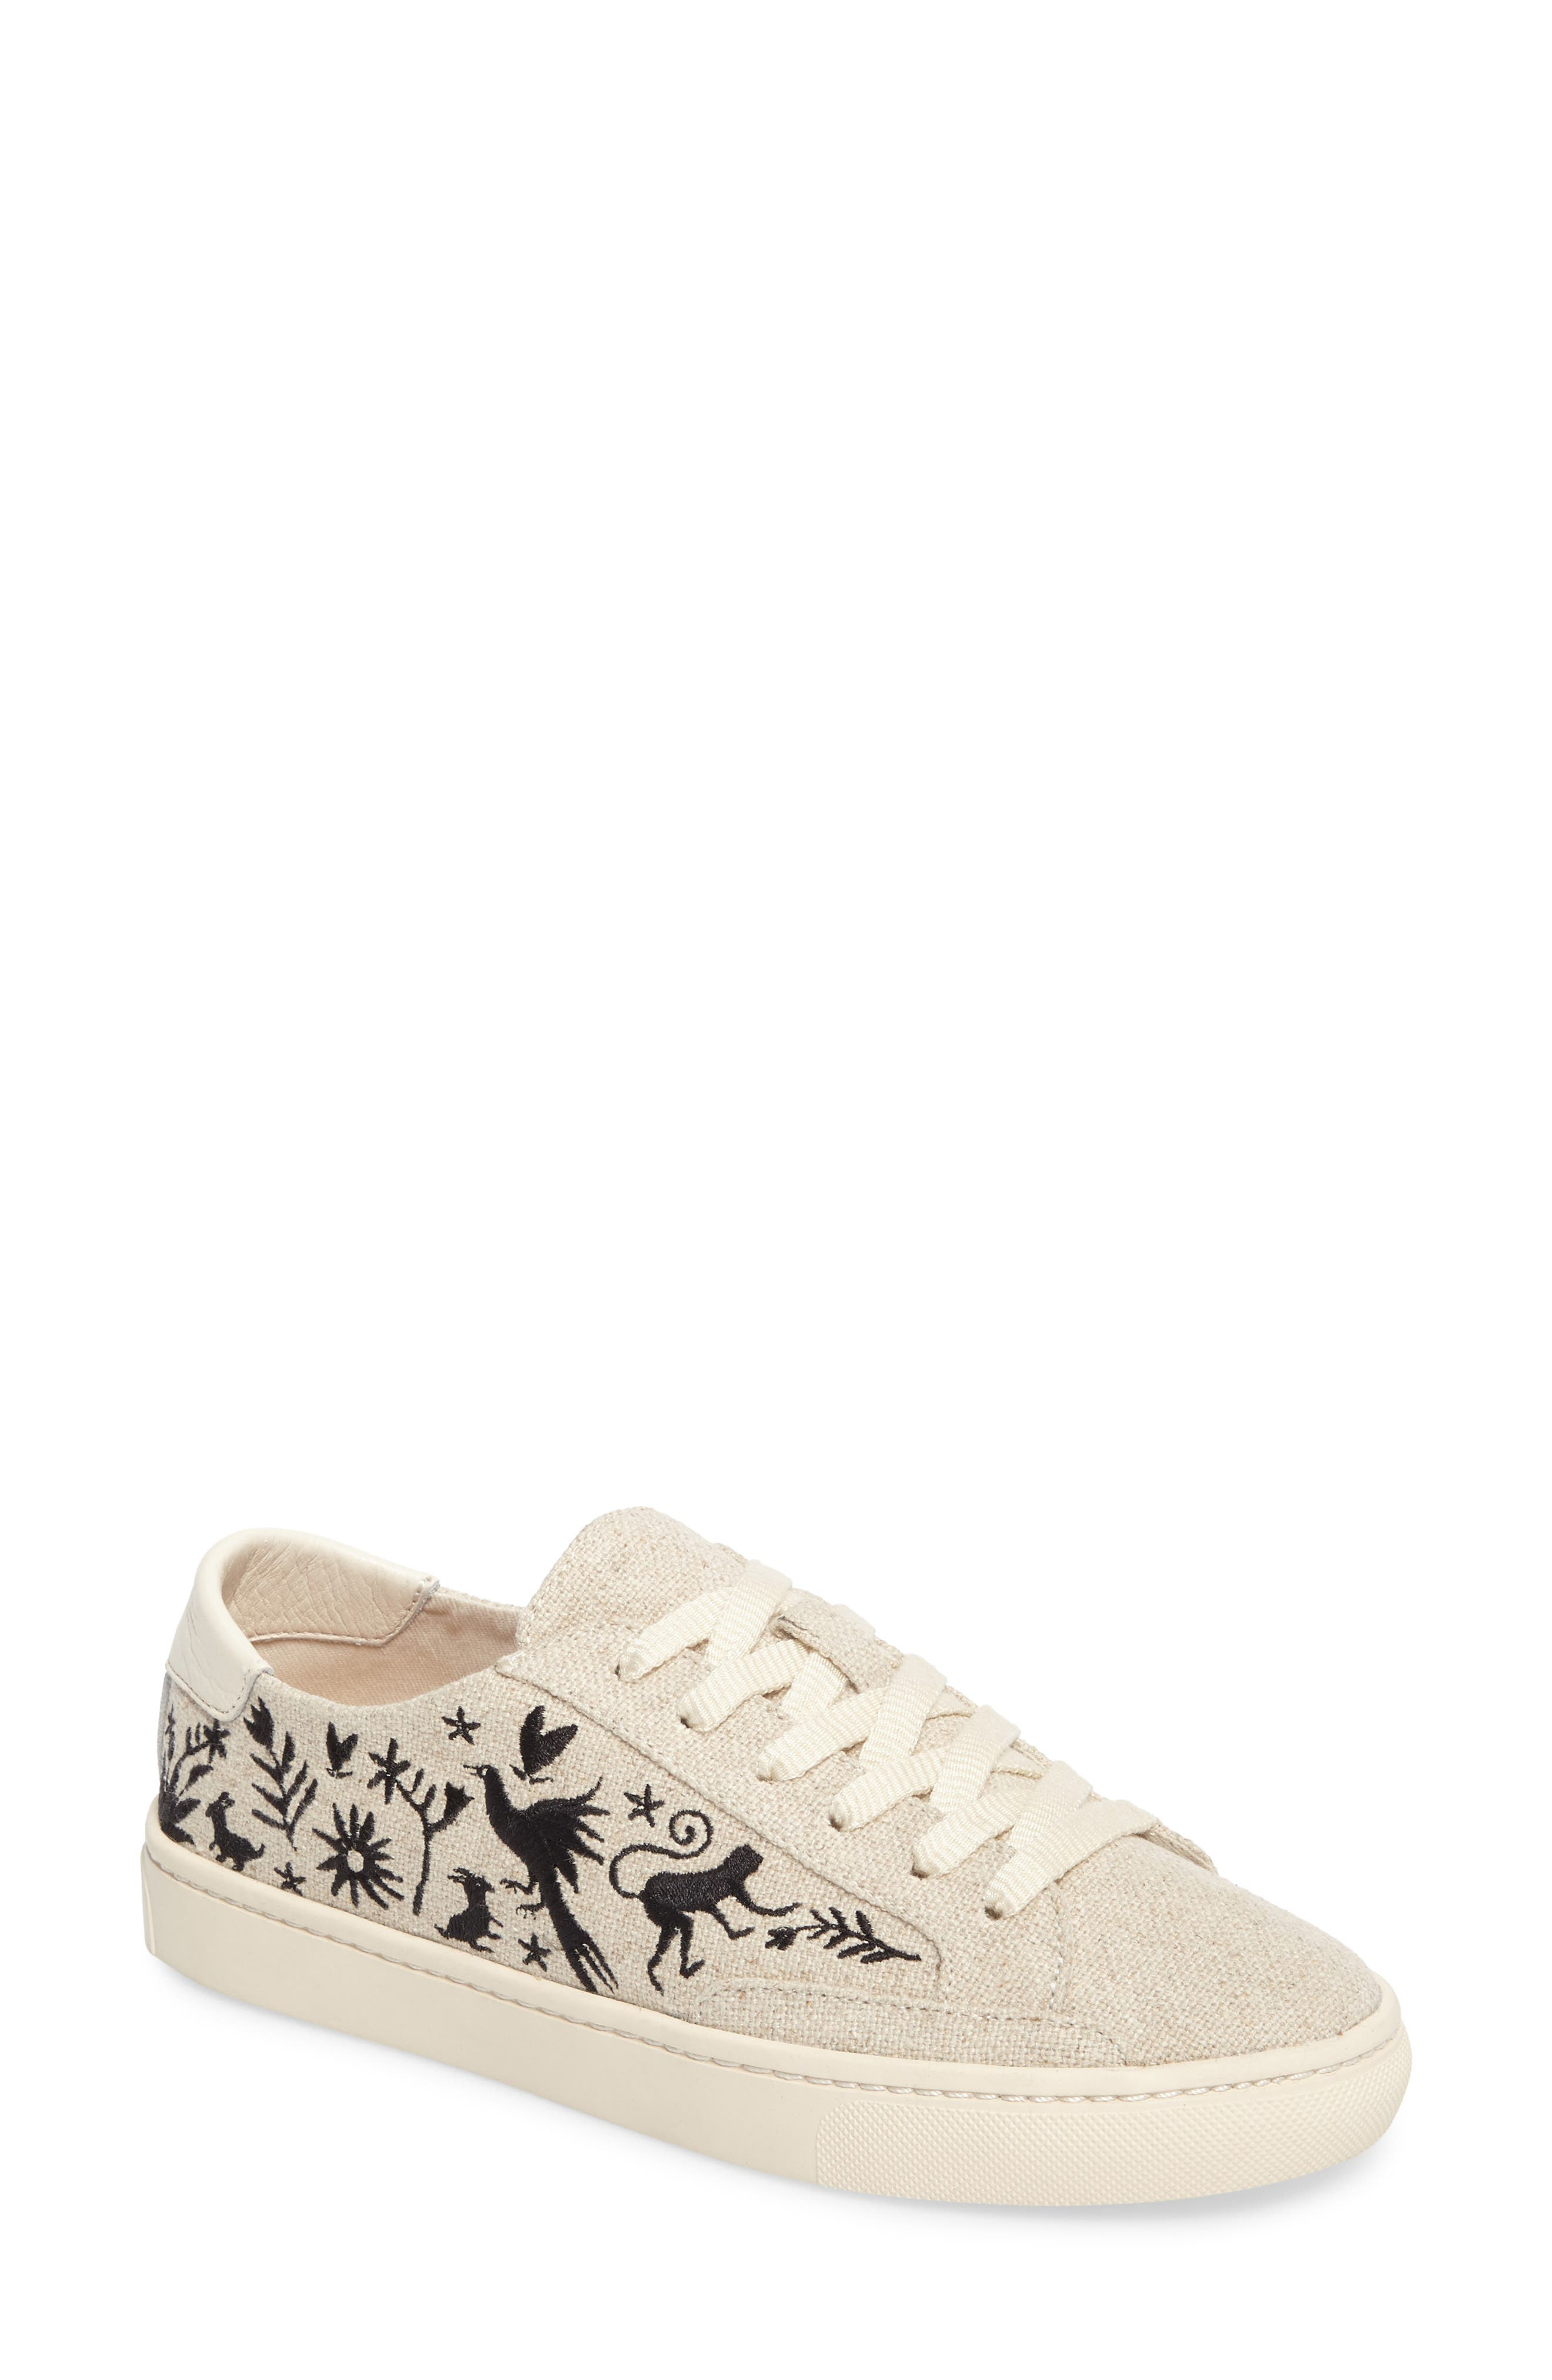 Otomi Sneaker,                         Main,                         color, Sand Black